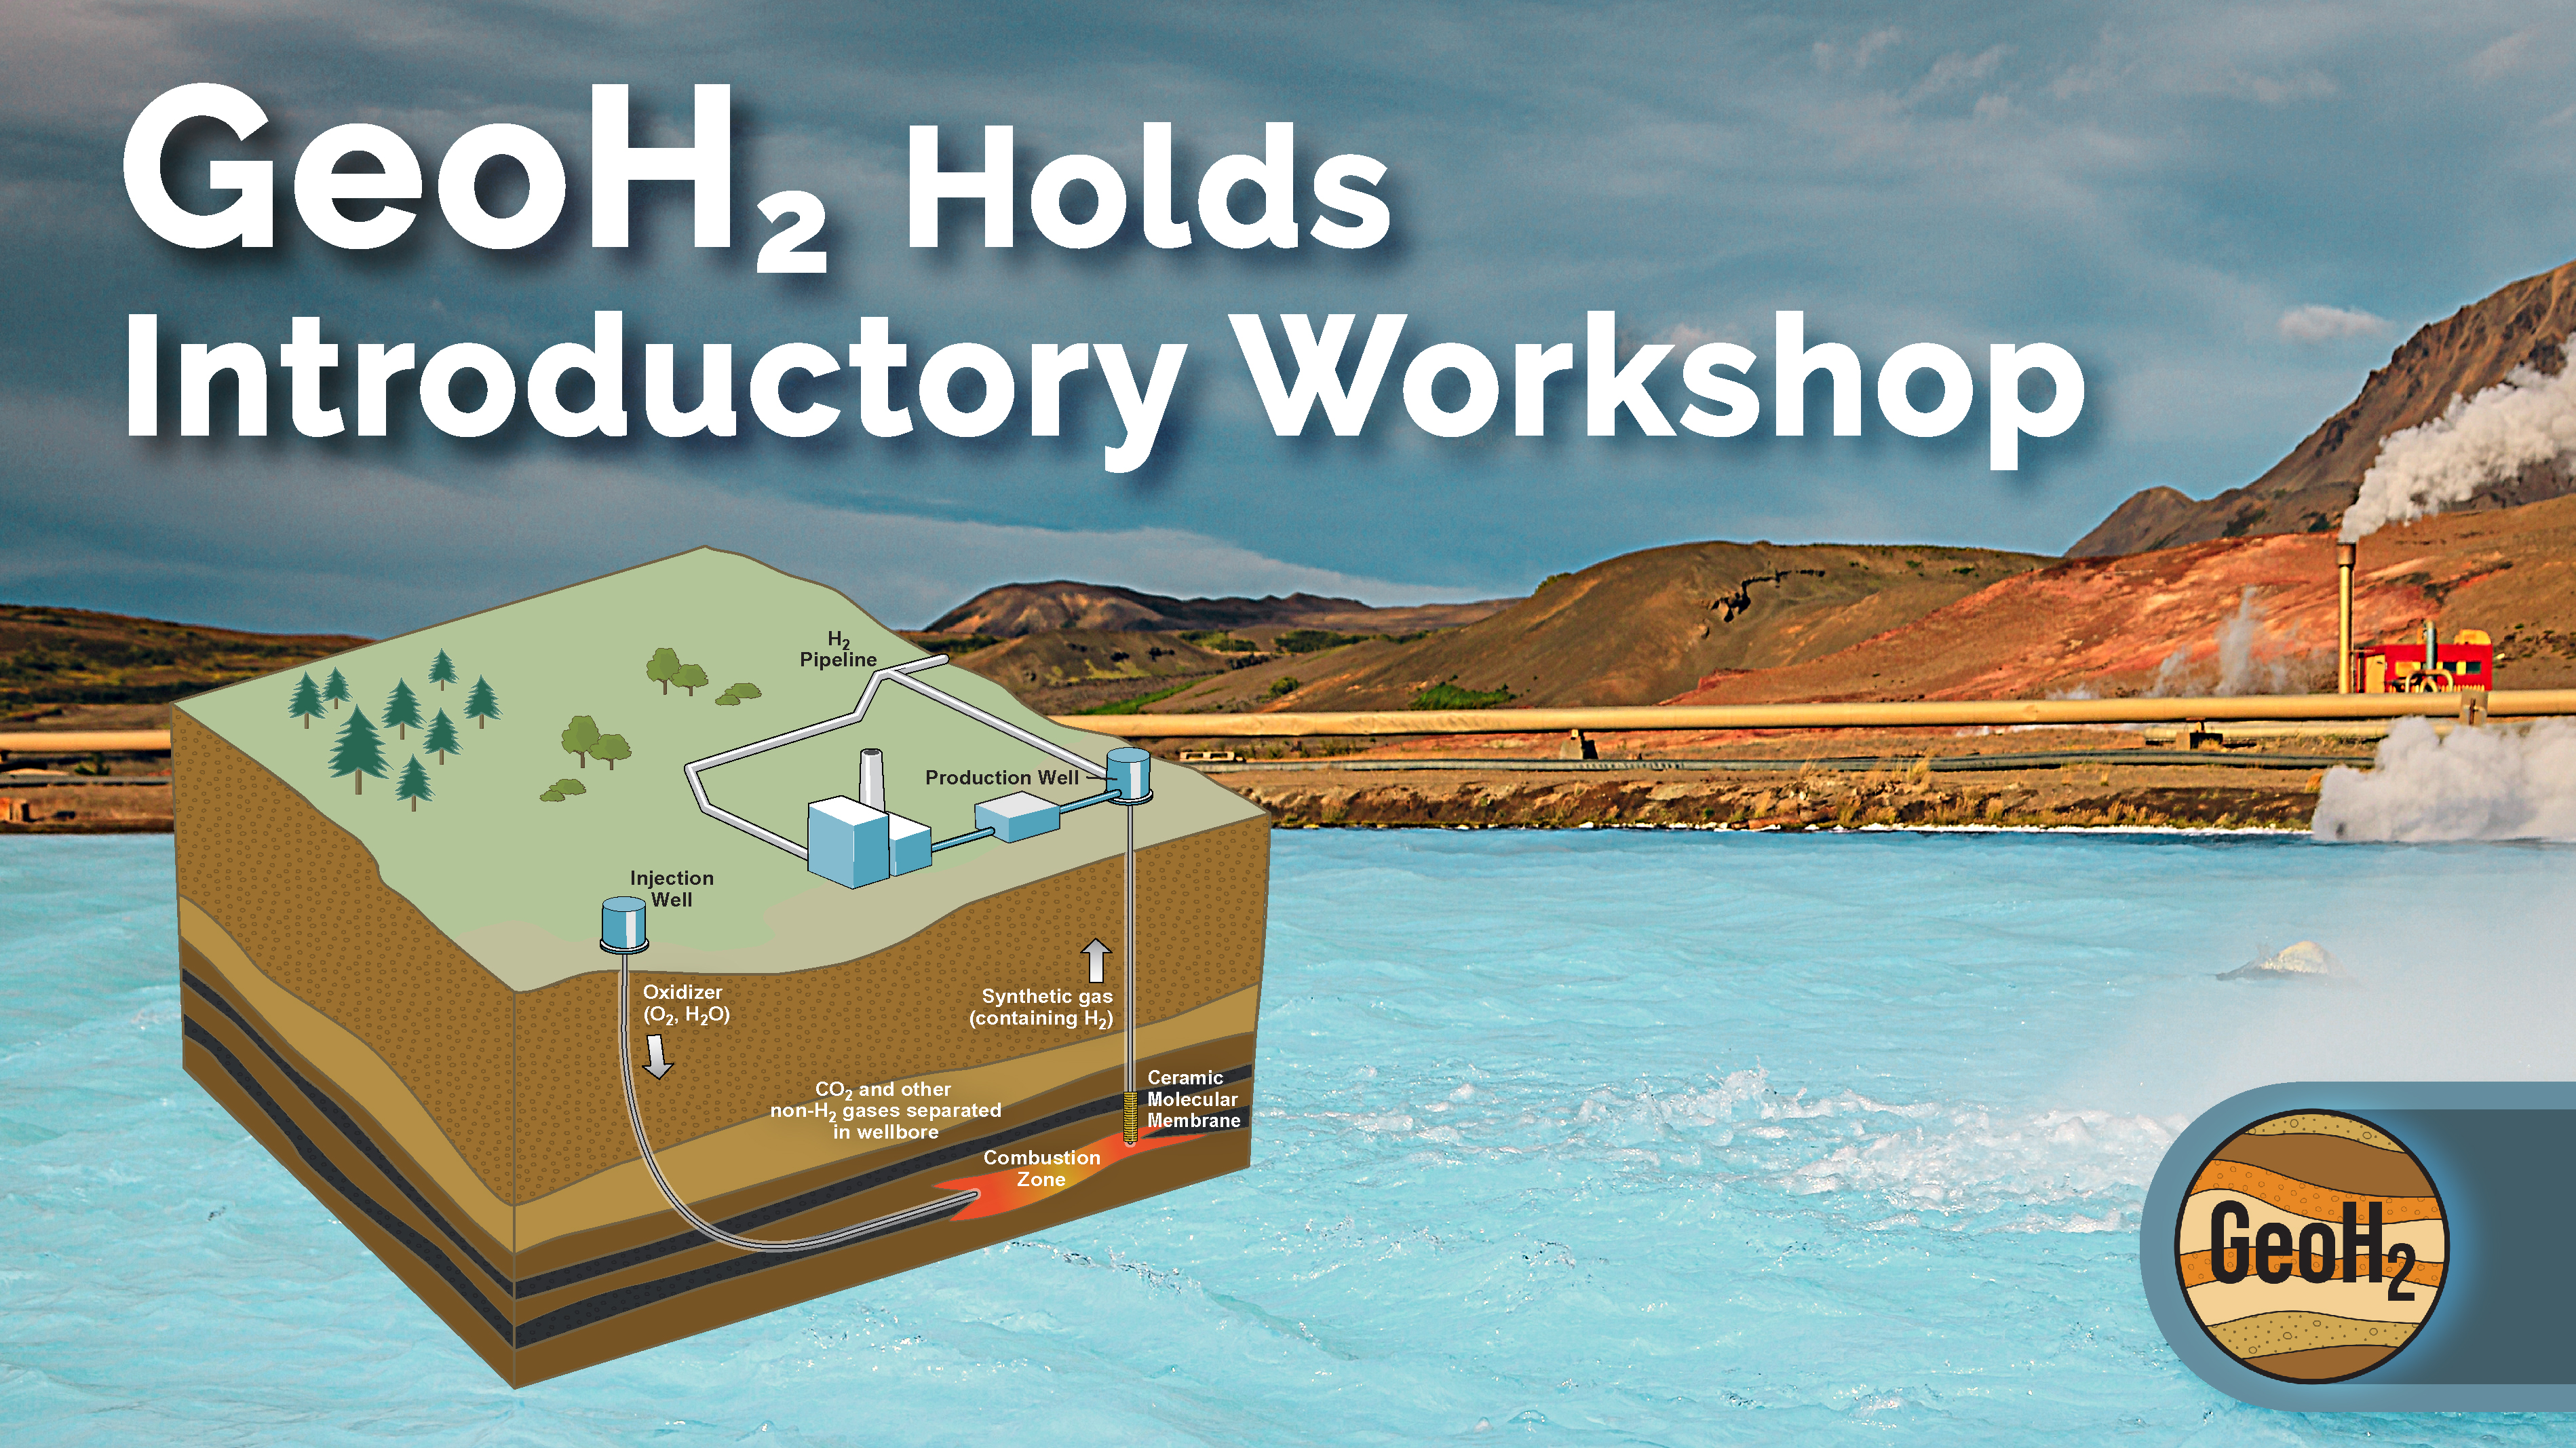 GeoH₂ Holds Introductory Workshop